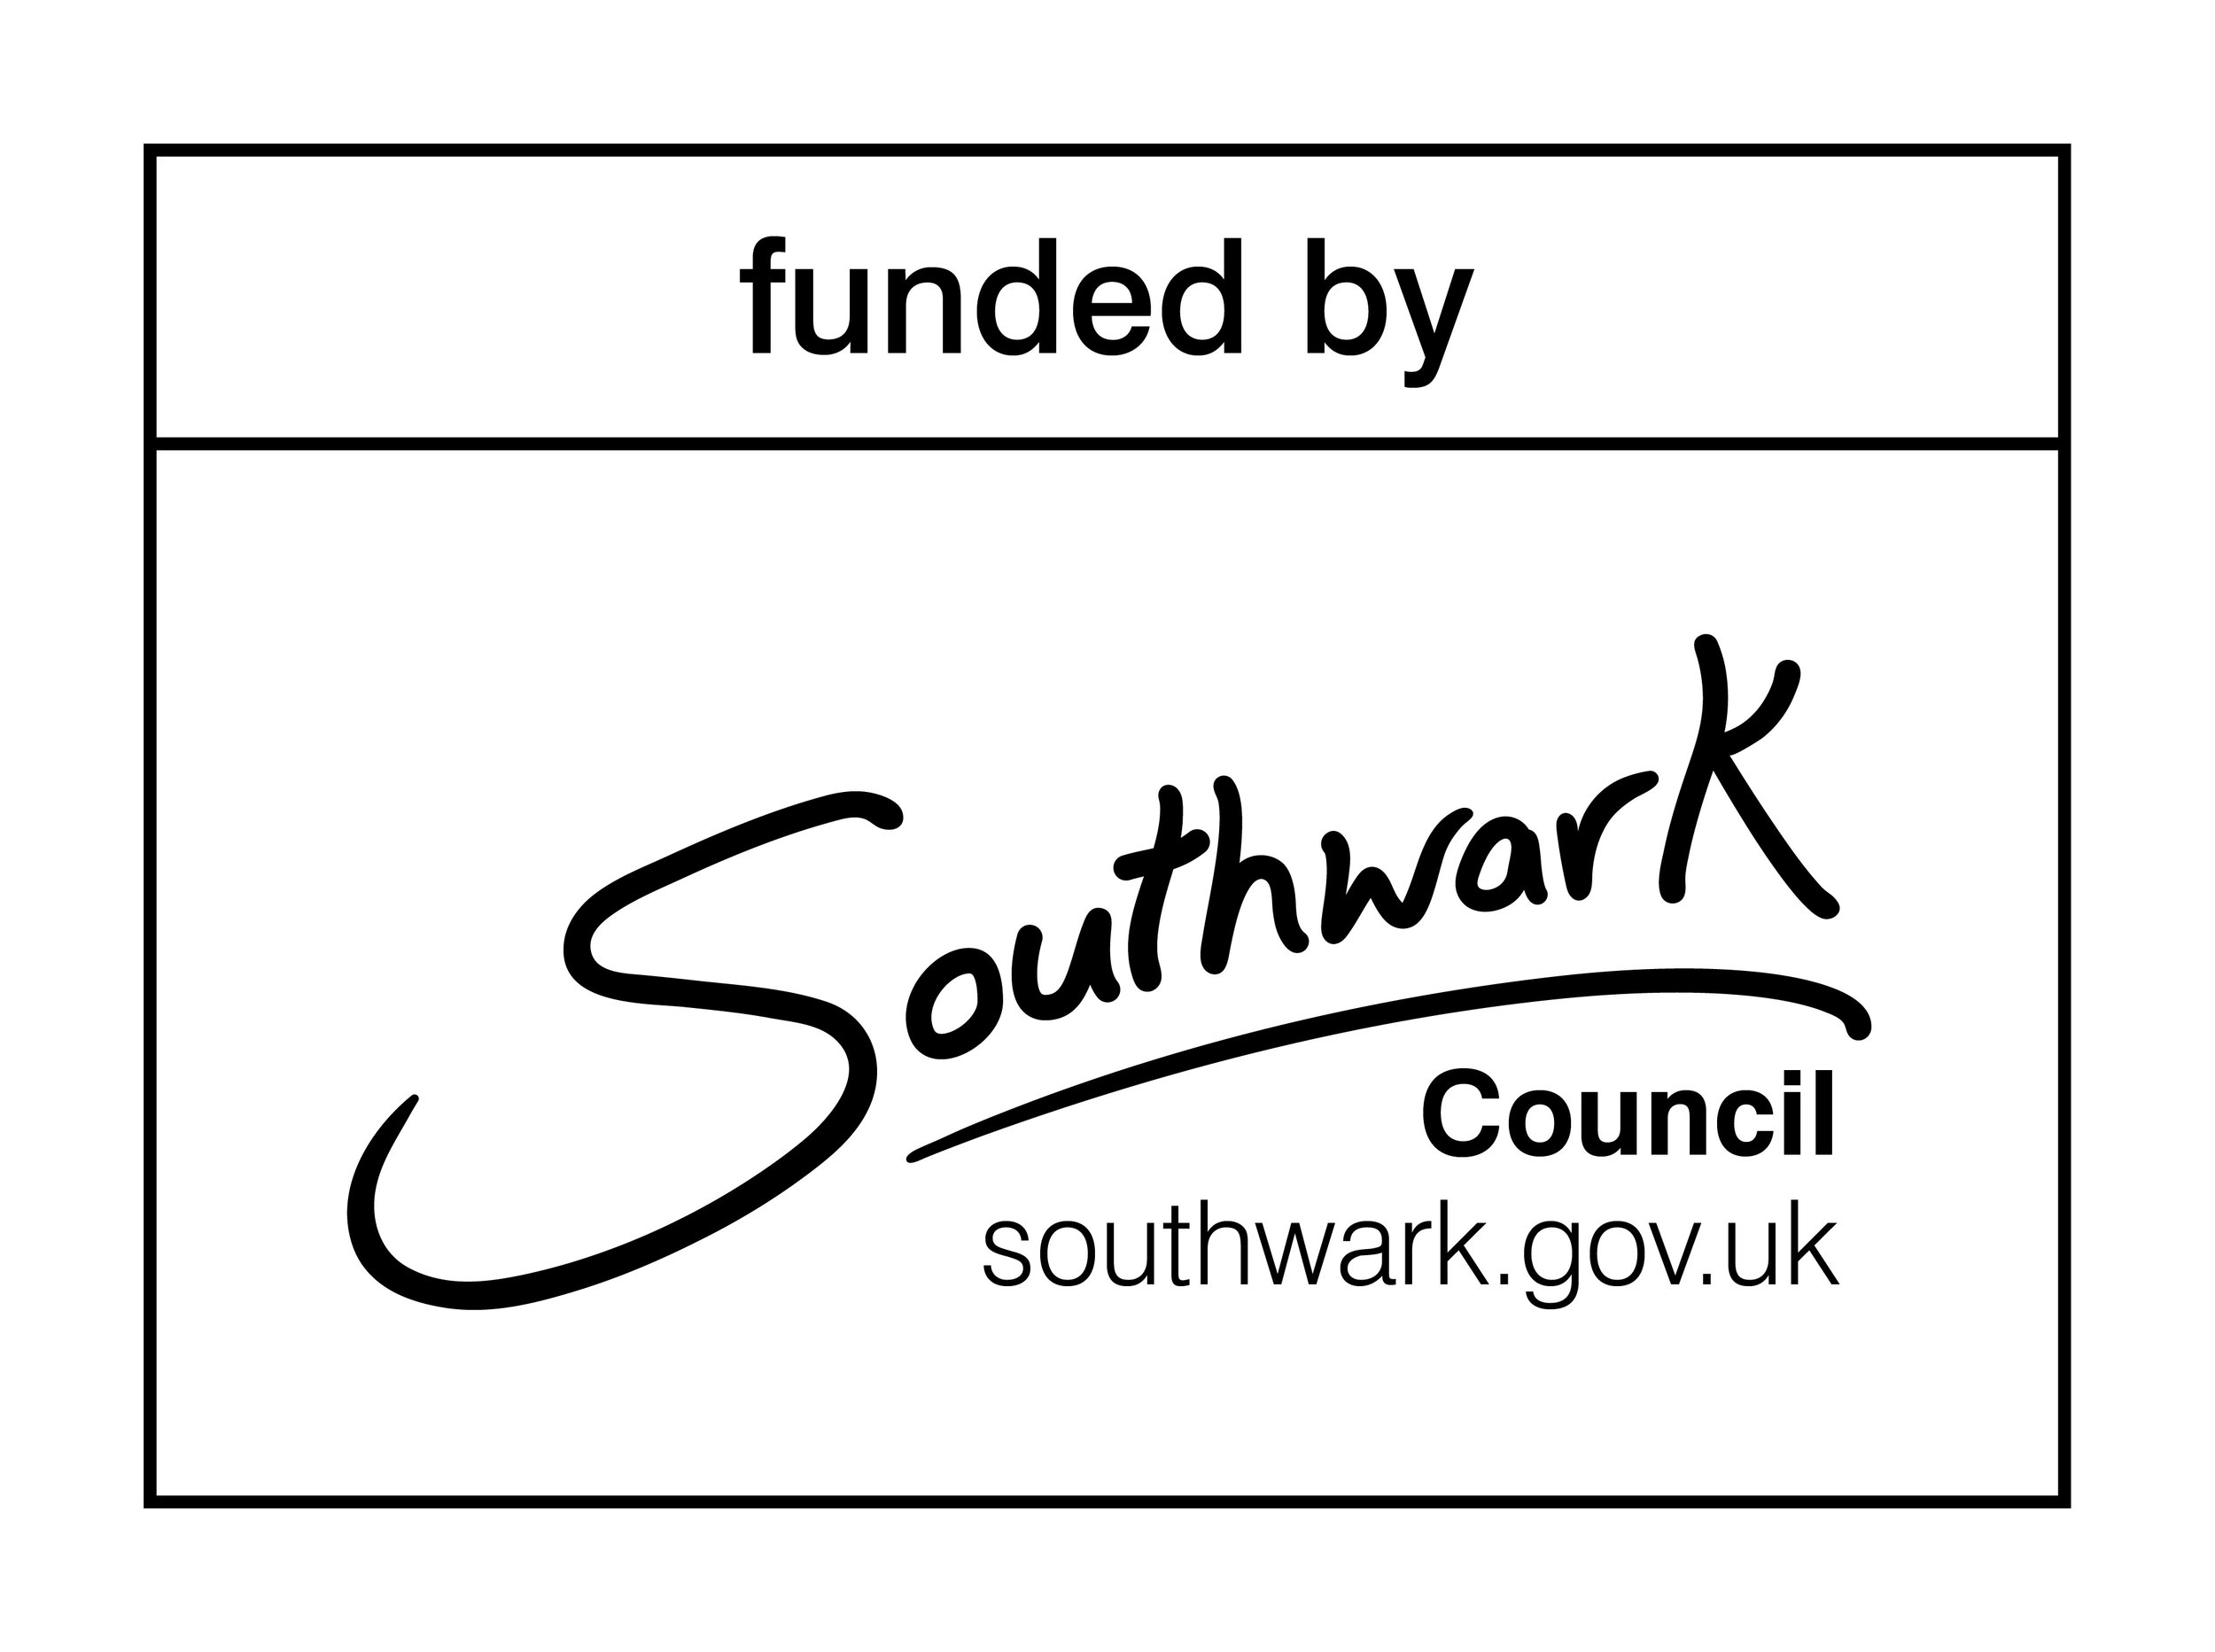 Hotel Elephant has received funding from Southwark Council's Arts Grants Fund which has provided valuable support for our Creative Enterprise program for 2015/16 and 2016/17.